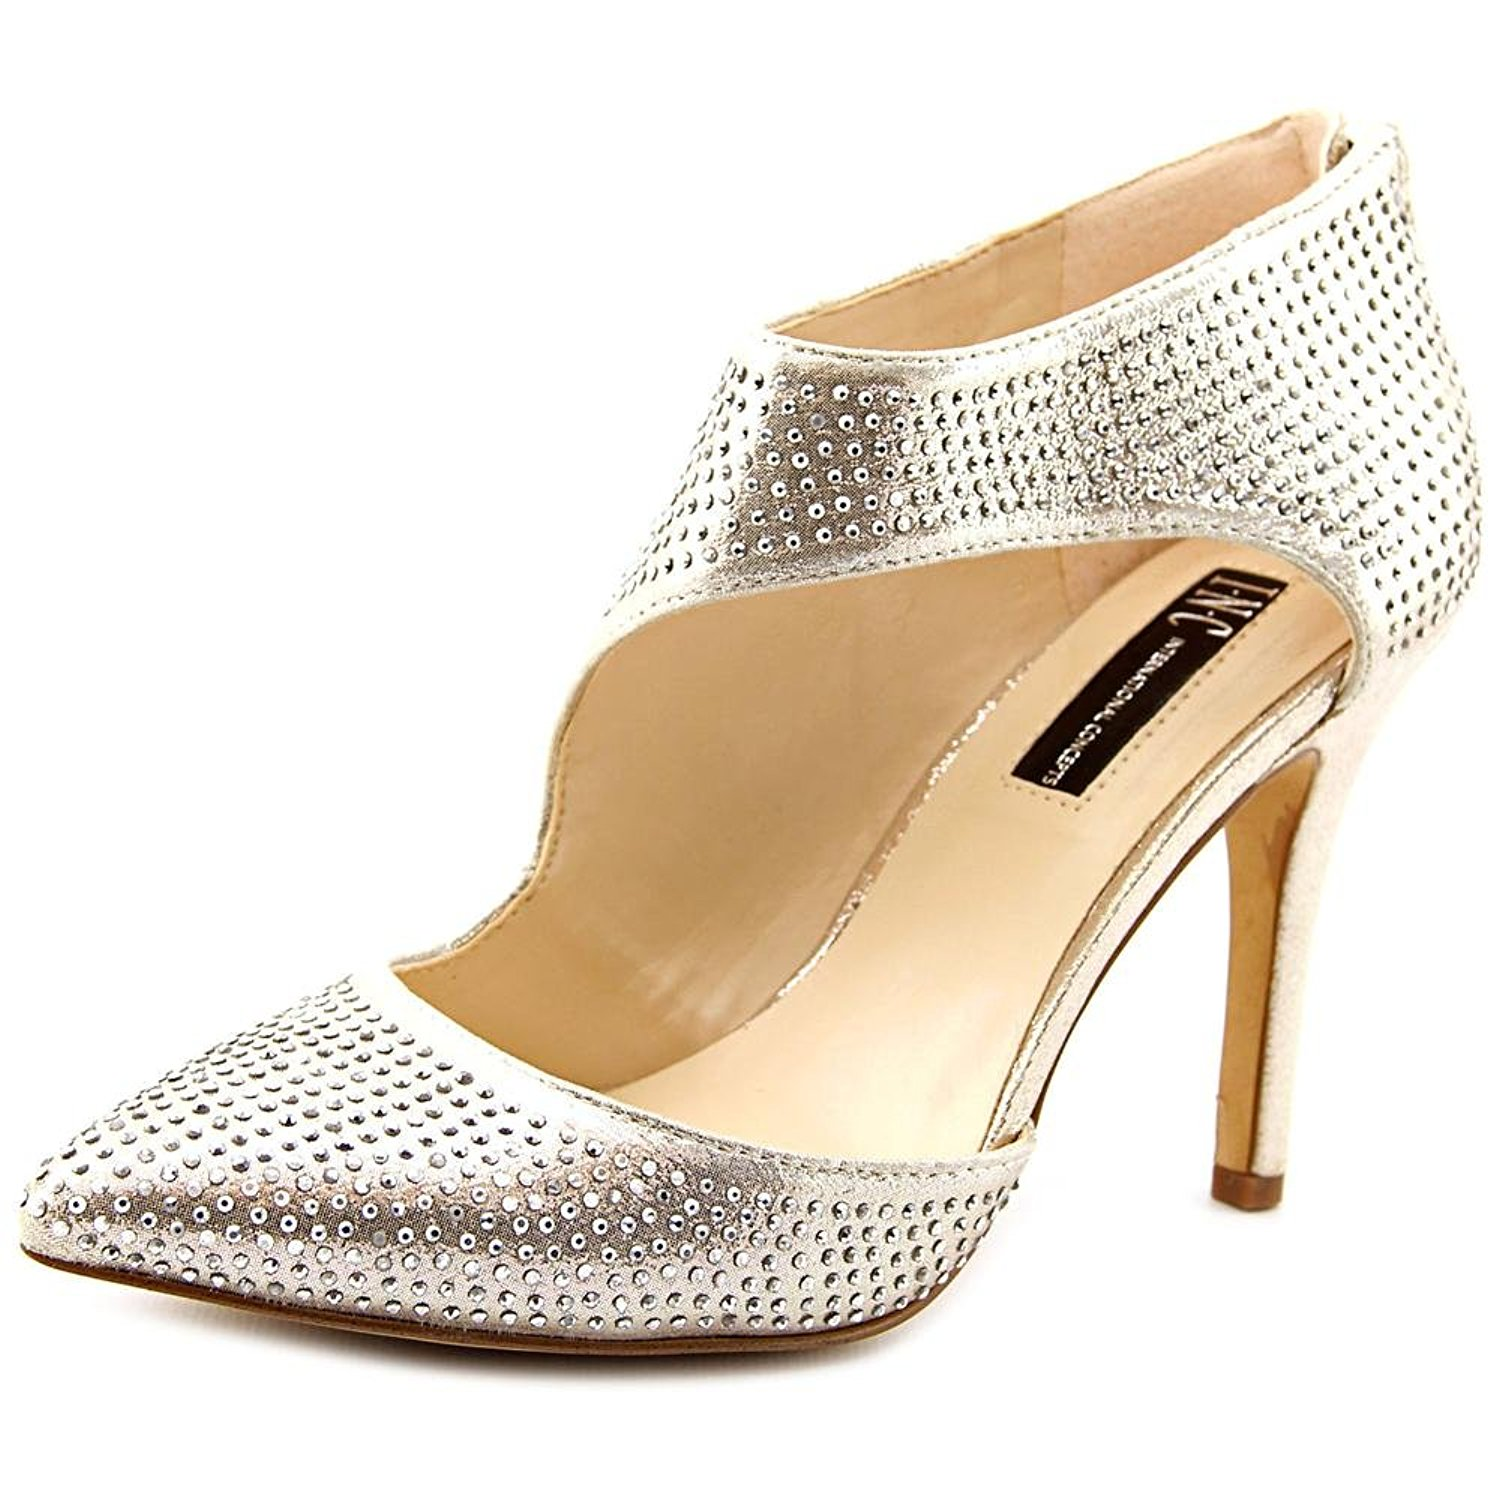 INC International Concepts Womens ZIZI Suede Pointed Toe Pearl Gold Size 8.5 W